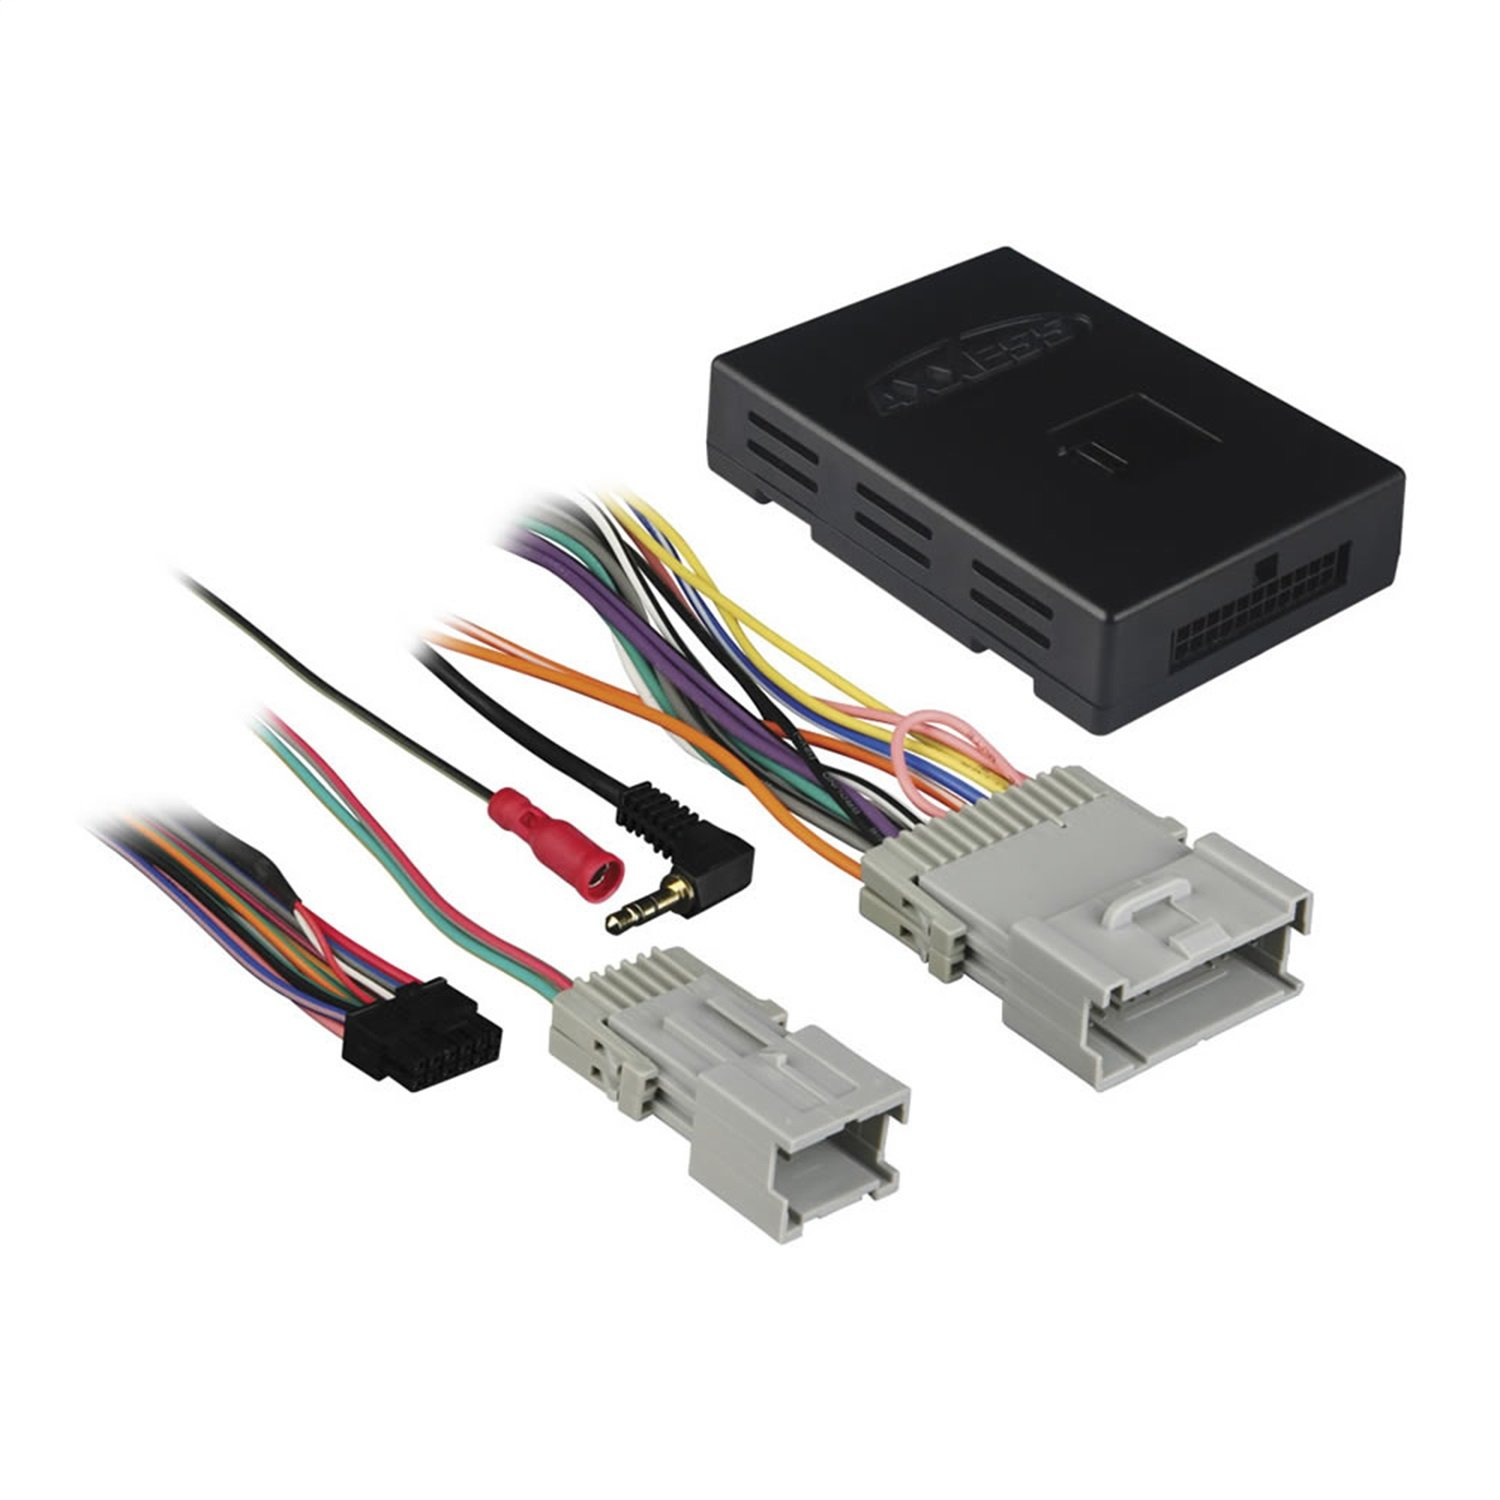 Stereo Harness Saab Wire Labeled Metra Gmos Onstar Interface For Gm Systems